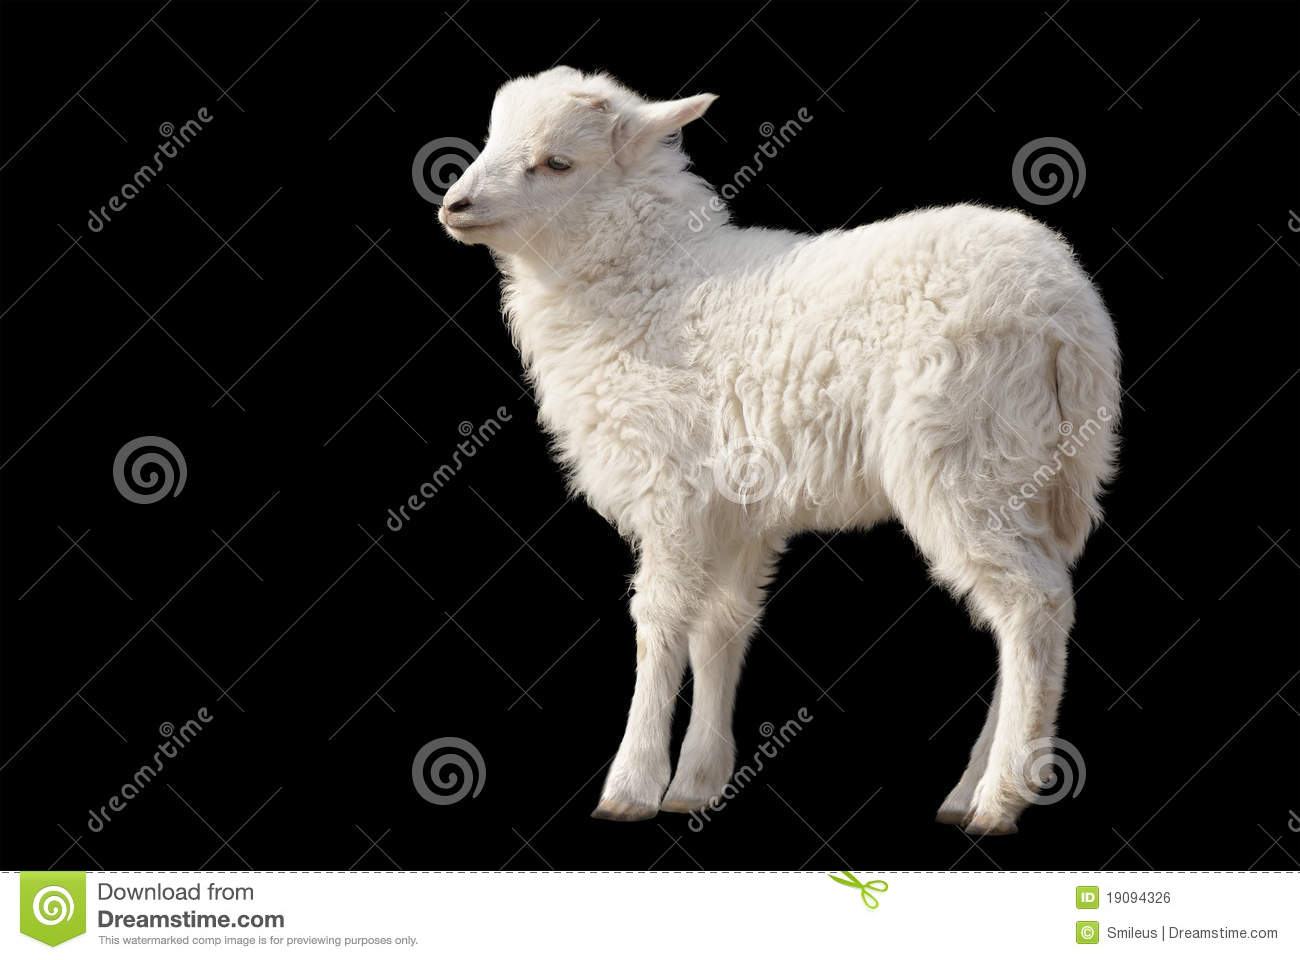 Cute Fluffy Lamb On Black Background Royalty Free Stock ...